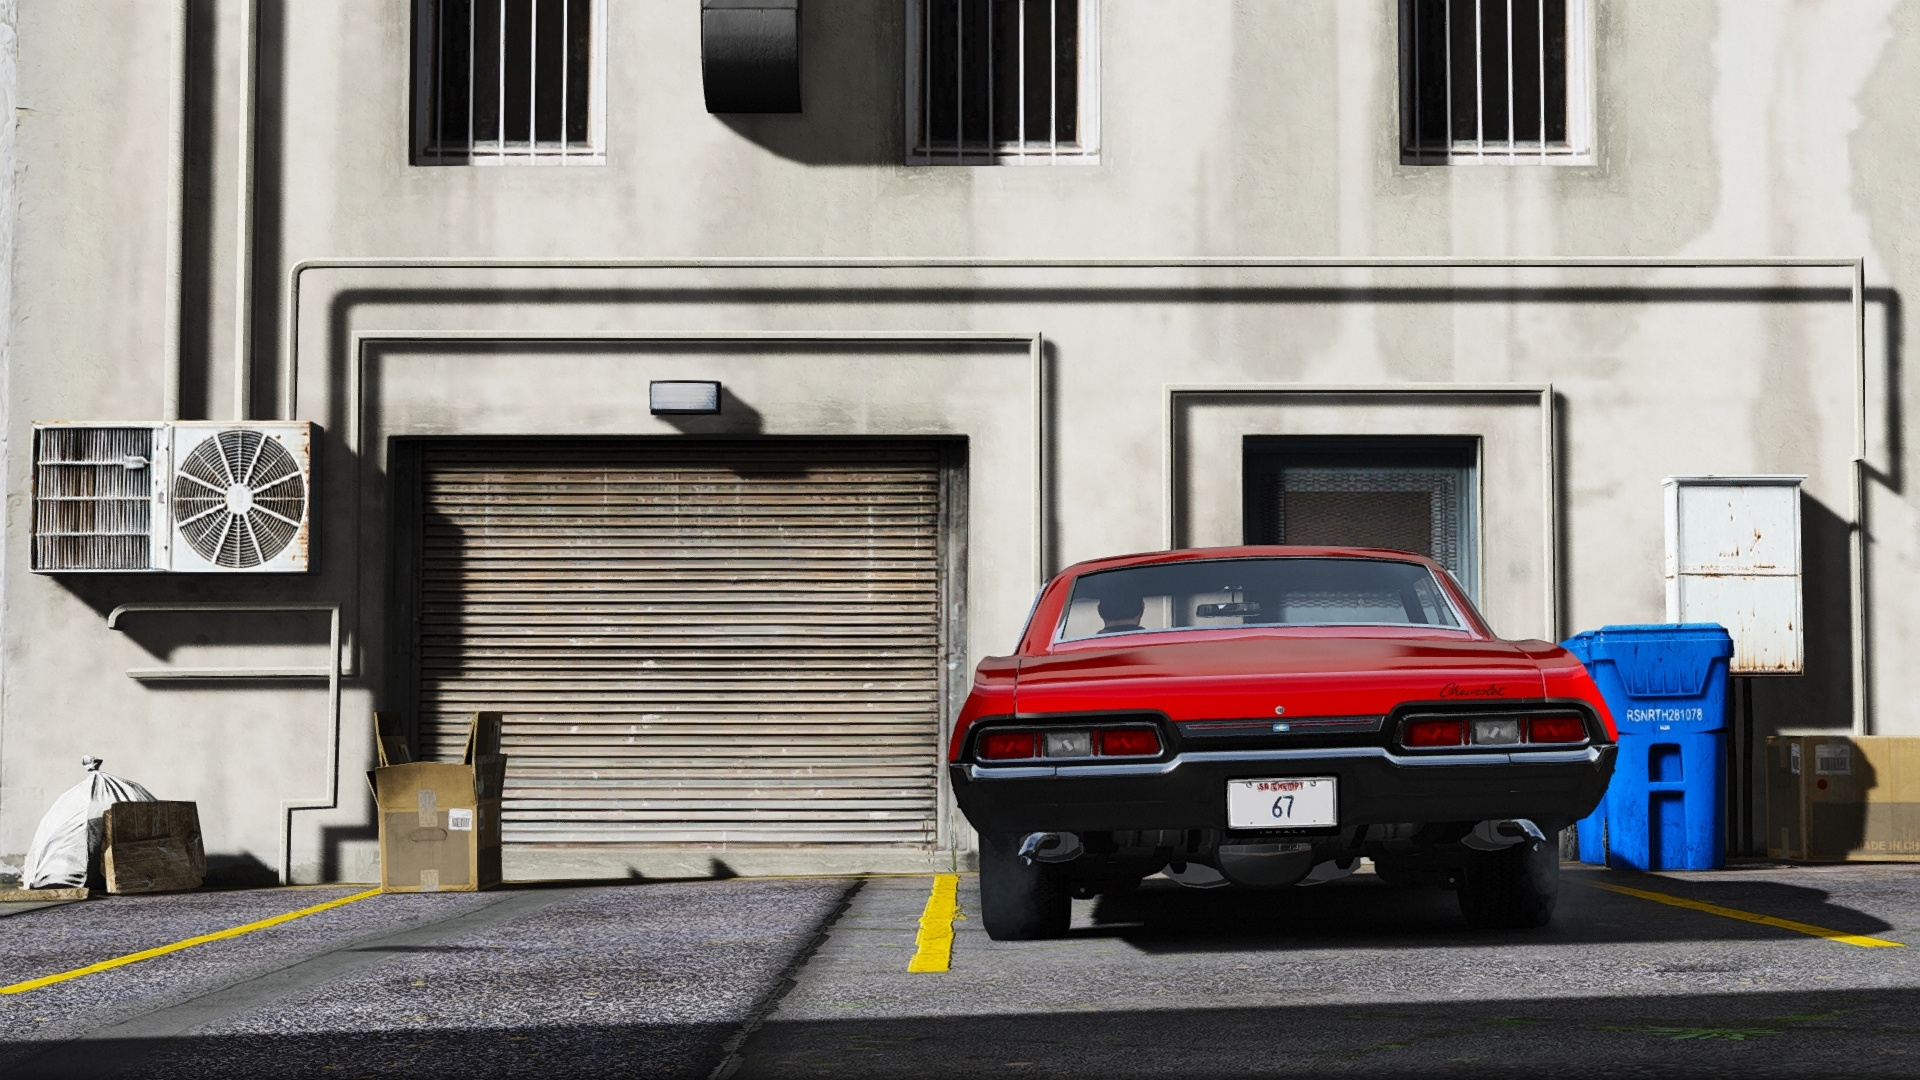 1967 Chevrolet Impala Sport Sedan 396 Turbo Jet [Add on] GTA5 Mods